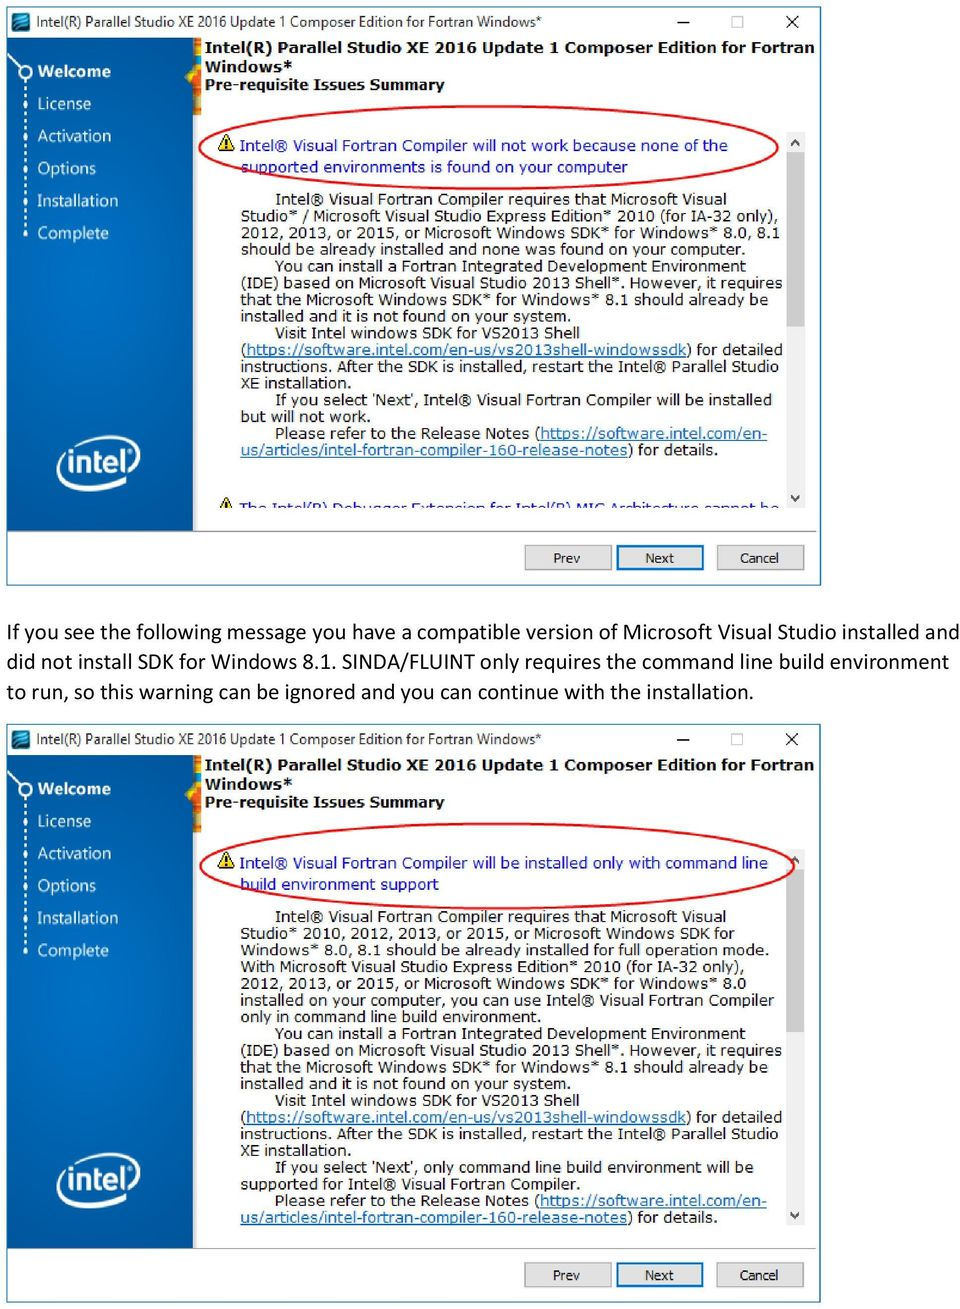 Installing Intel Parallel Studio XE Composer Edition for